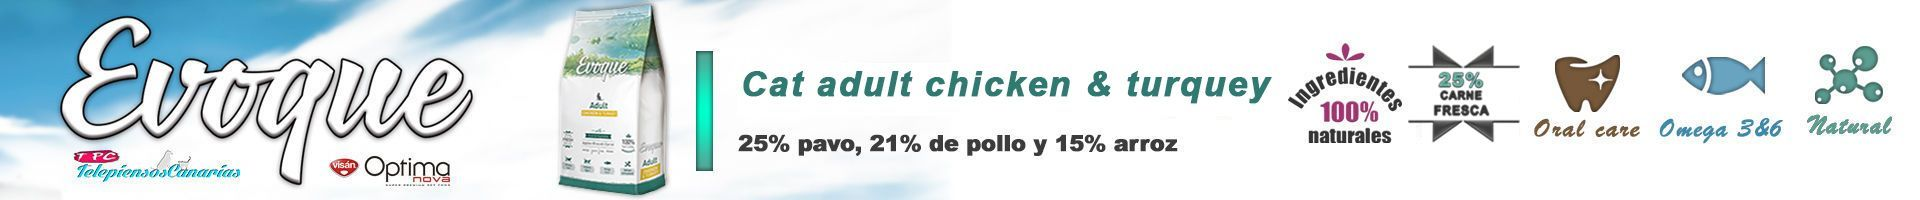 Evoque cat adult chicken and turquey, con 25% carne de pavo